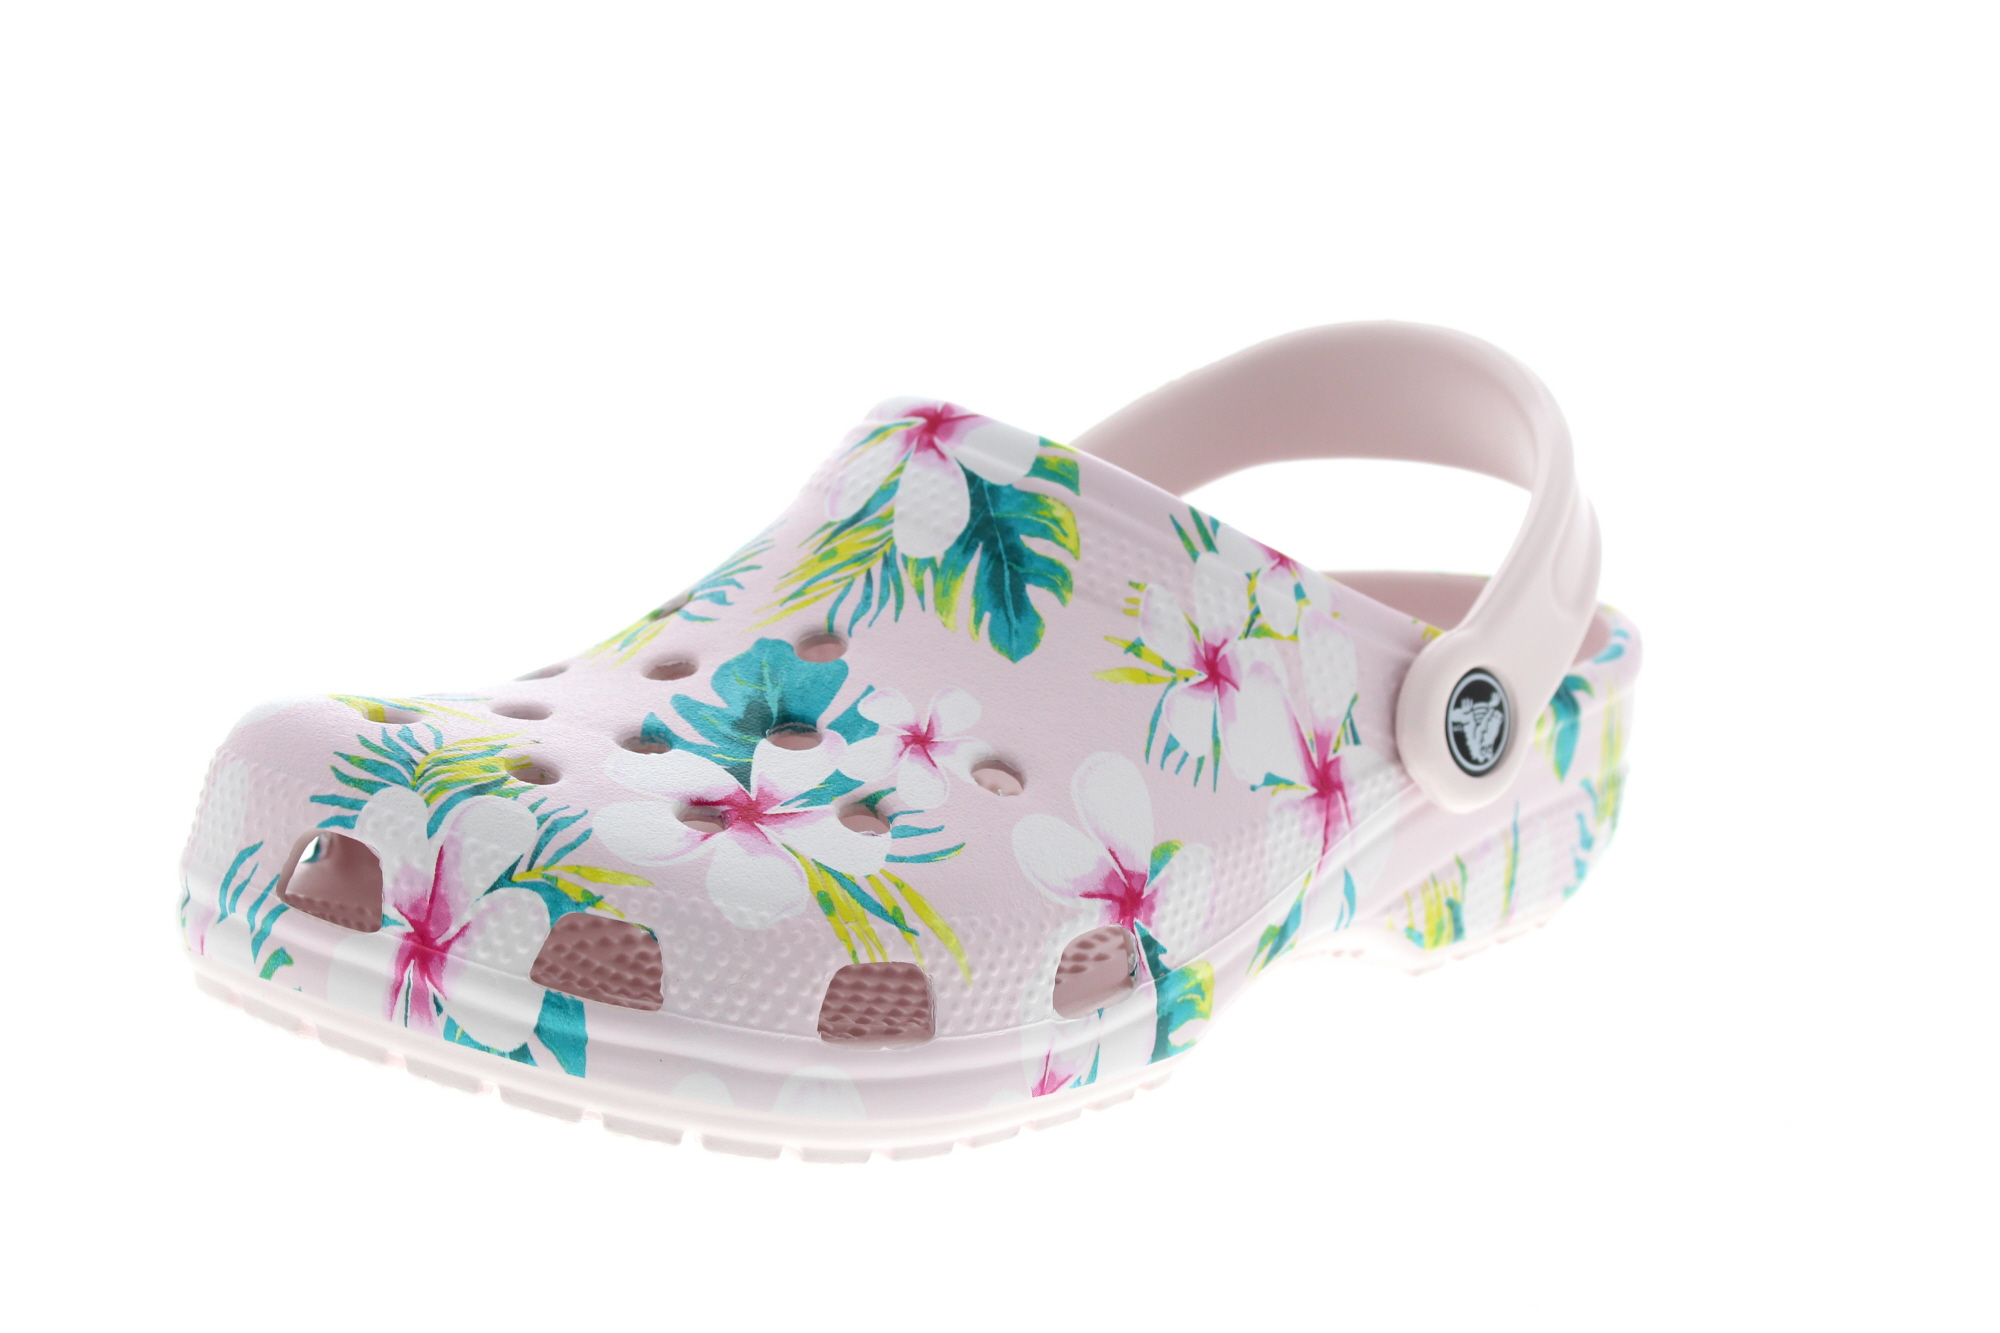 200c642d98b56 CROCS Clogs CLASSIC SEASONAL GRAPHIC barely pink floral